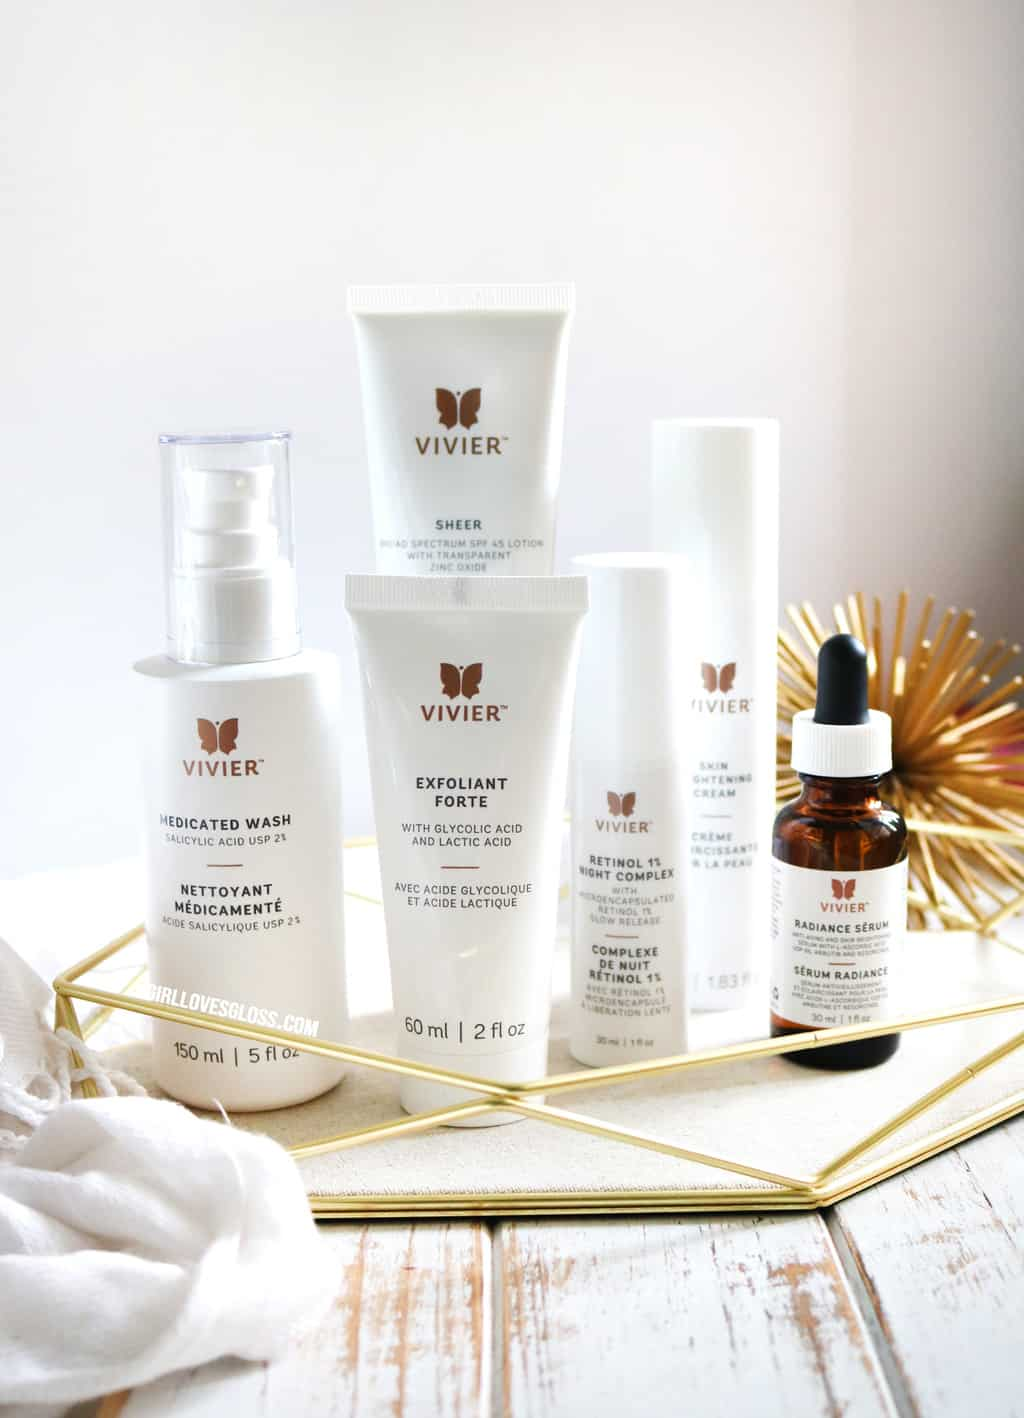 My First Facial Peel | Introduction to Vivier Skincare